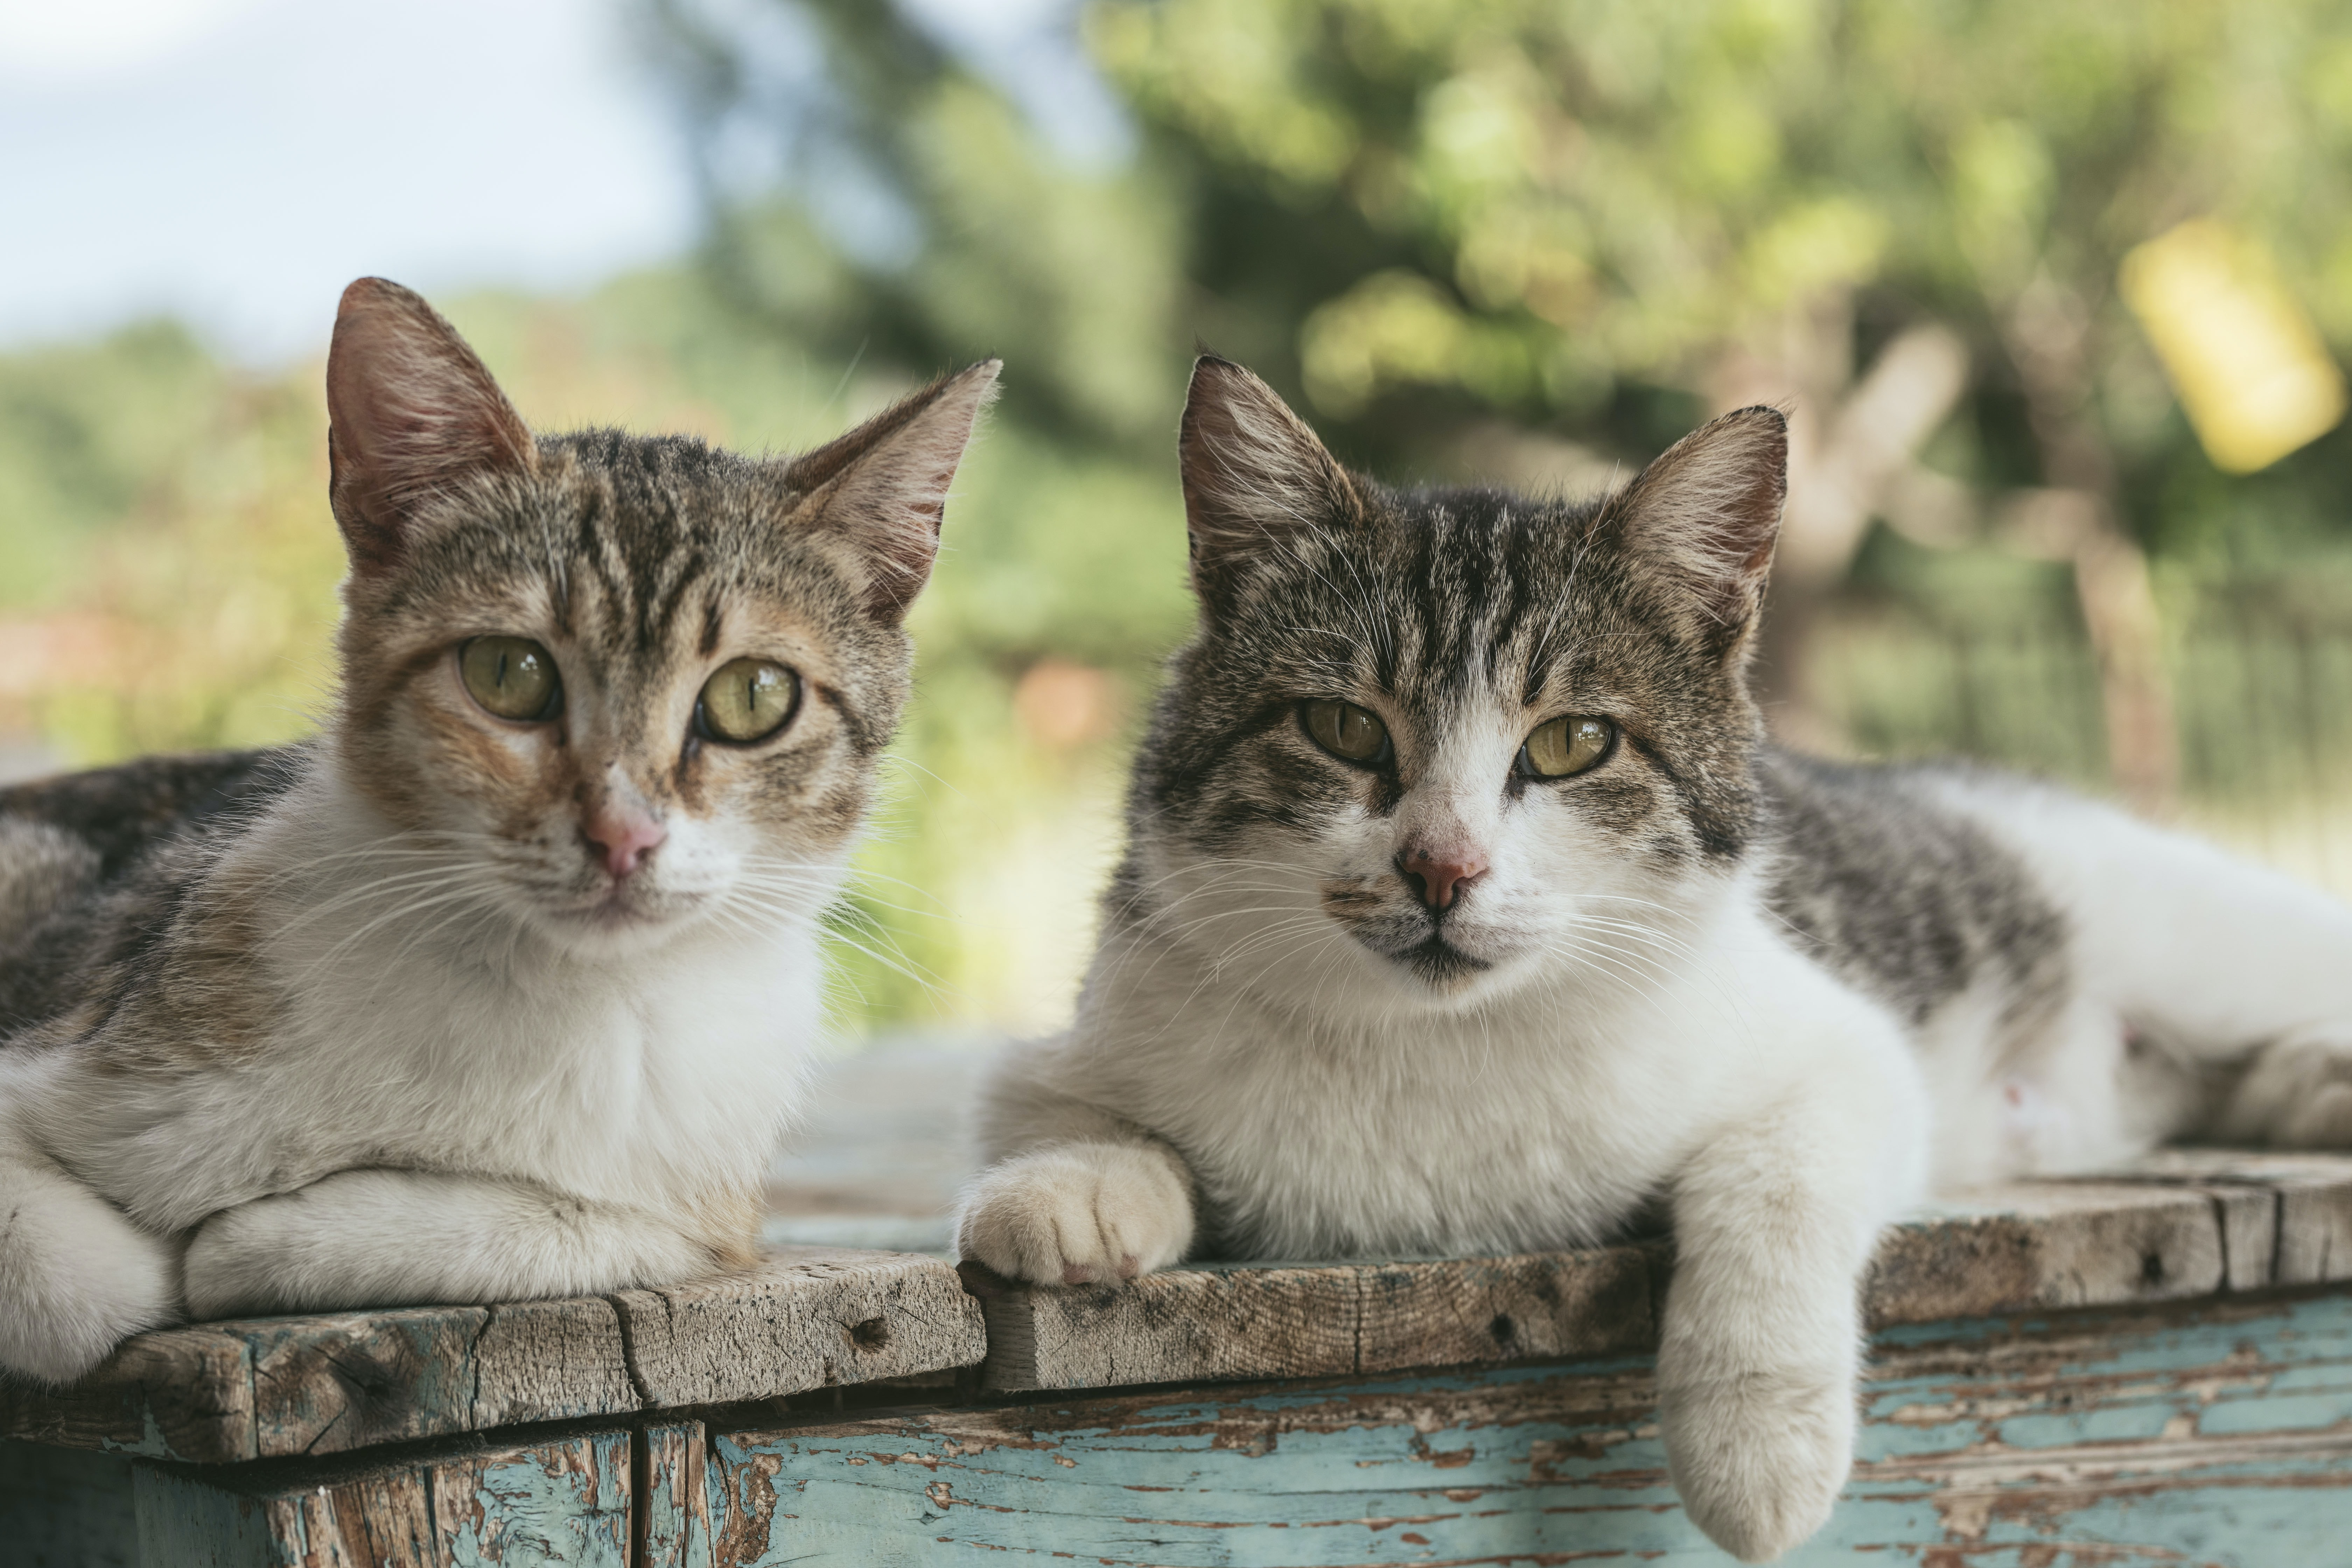 two brown tabby cats on wood planks